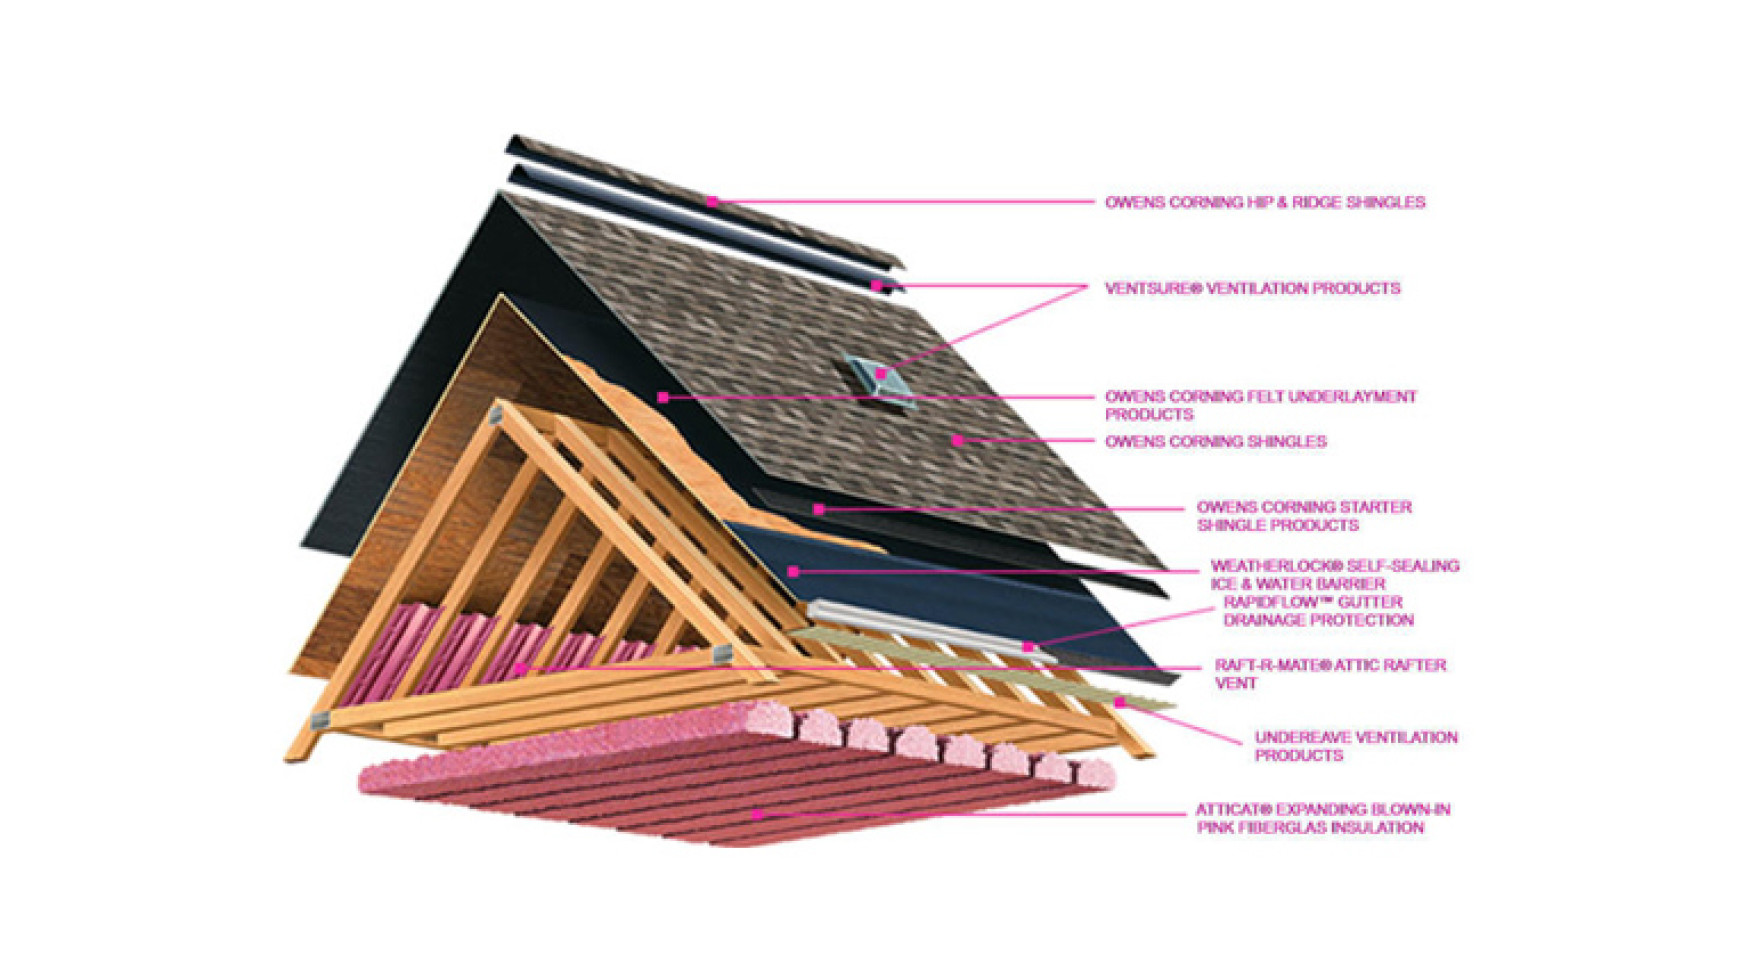 roofing terms diagram afc neo wiring sr20det blog brown rooftops